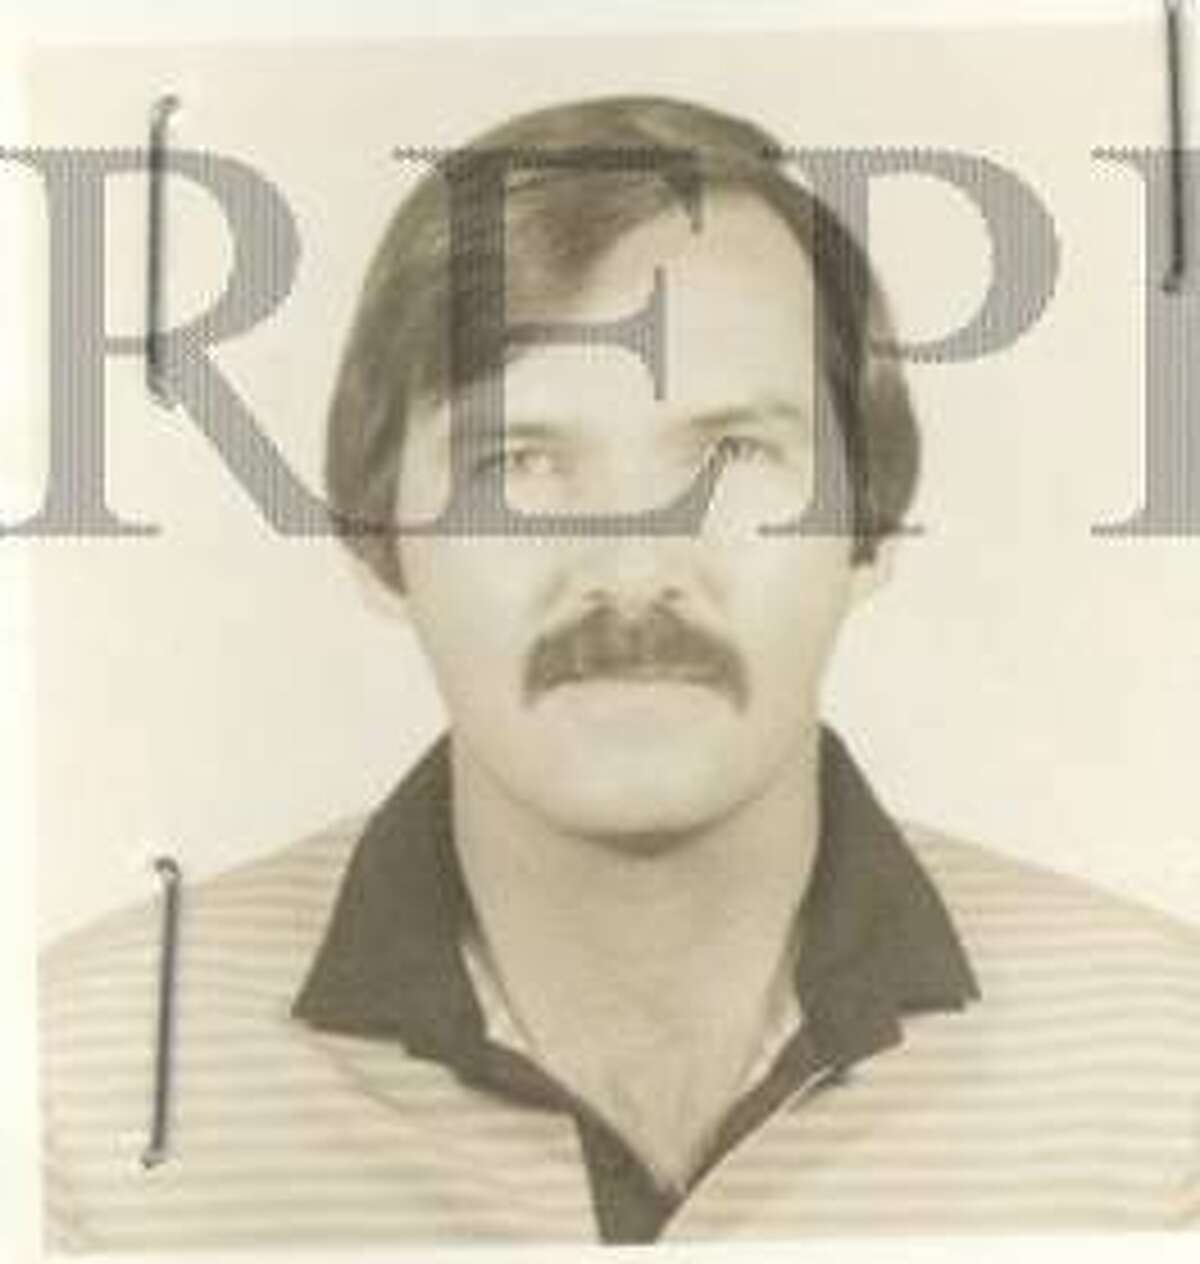 The Houston FBI is leading a global search for victims of pedophile William James Vahey, shown here in 1986.